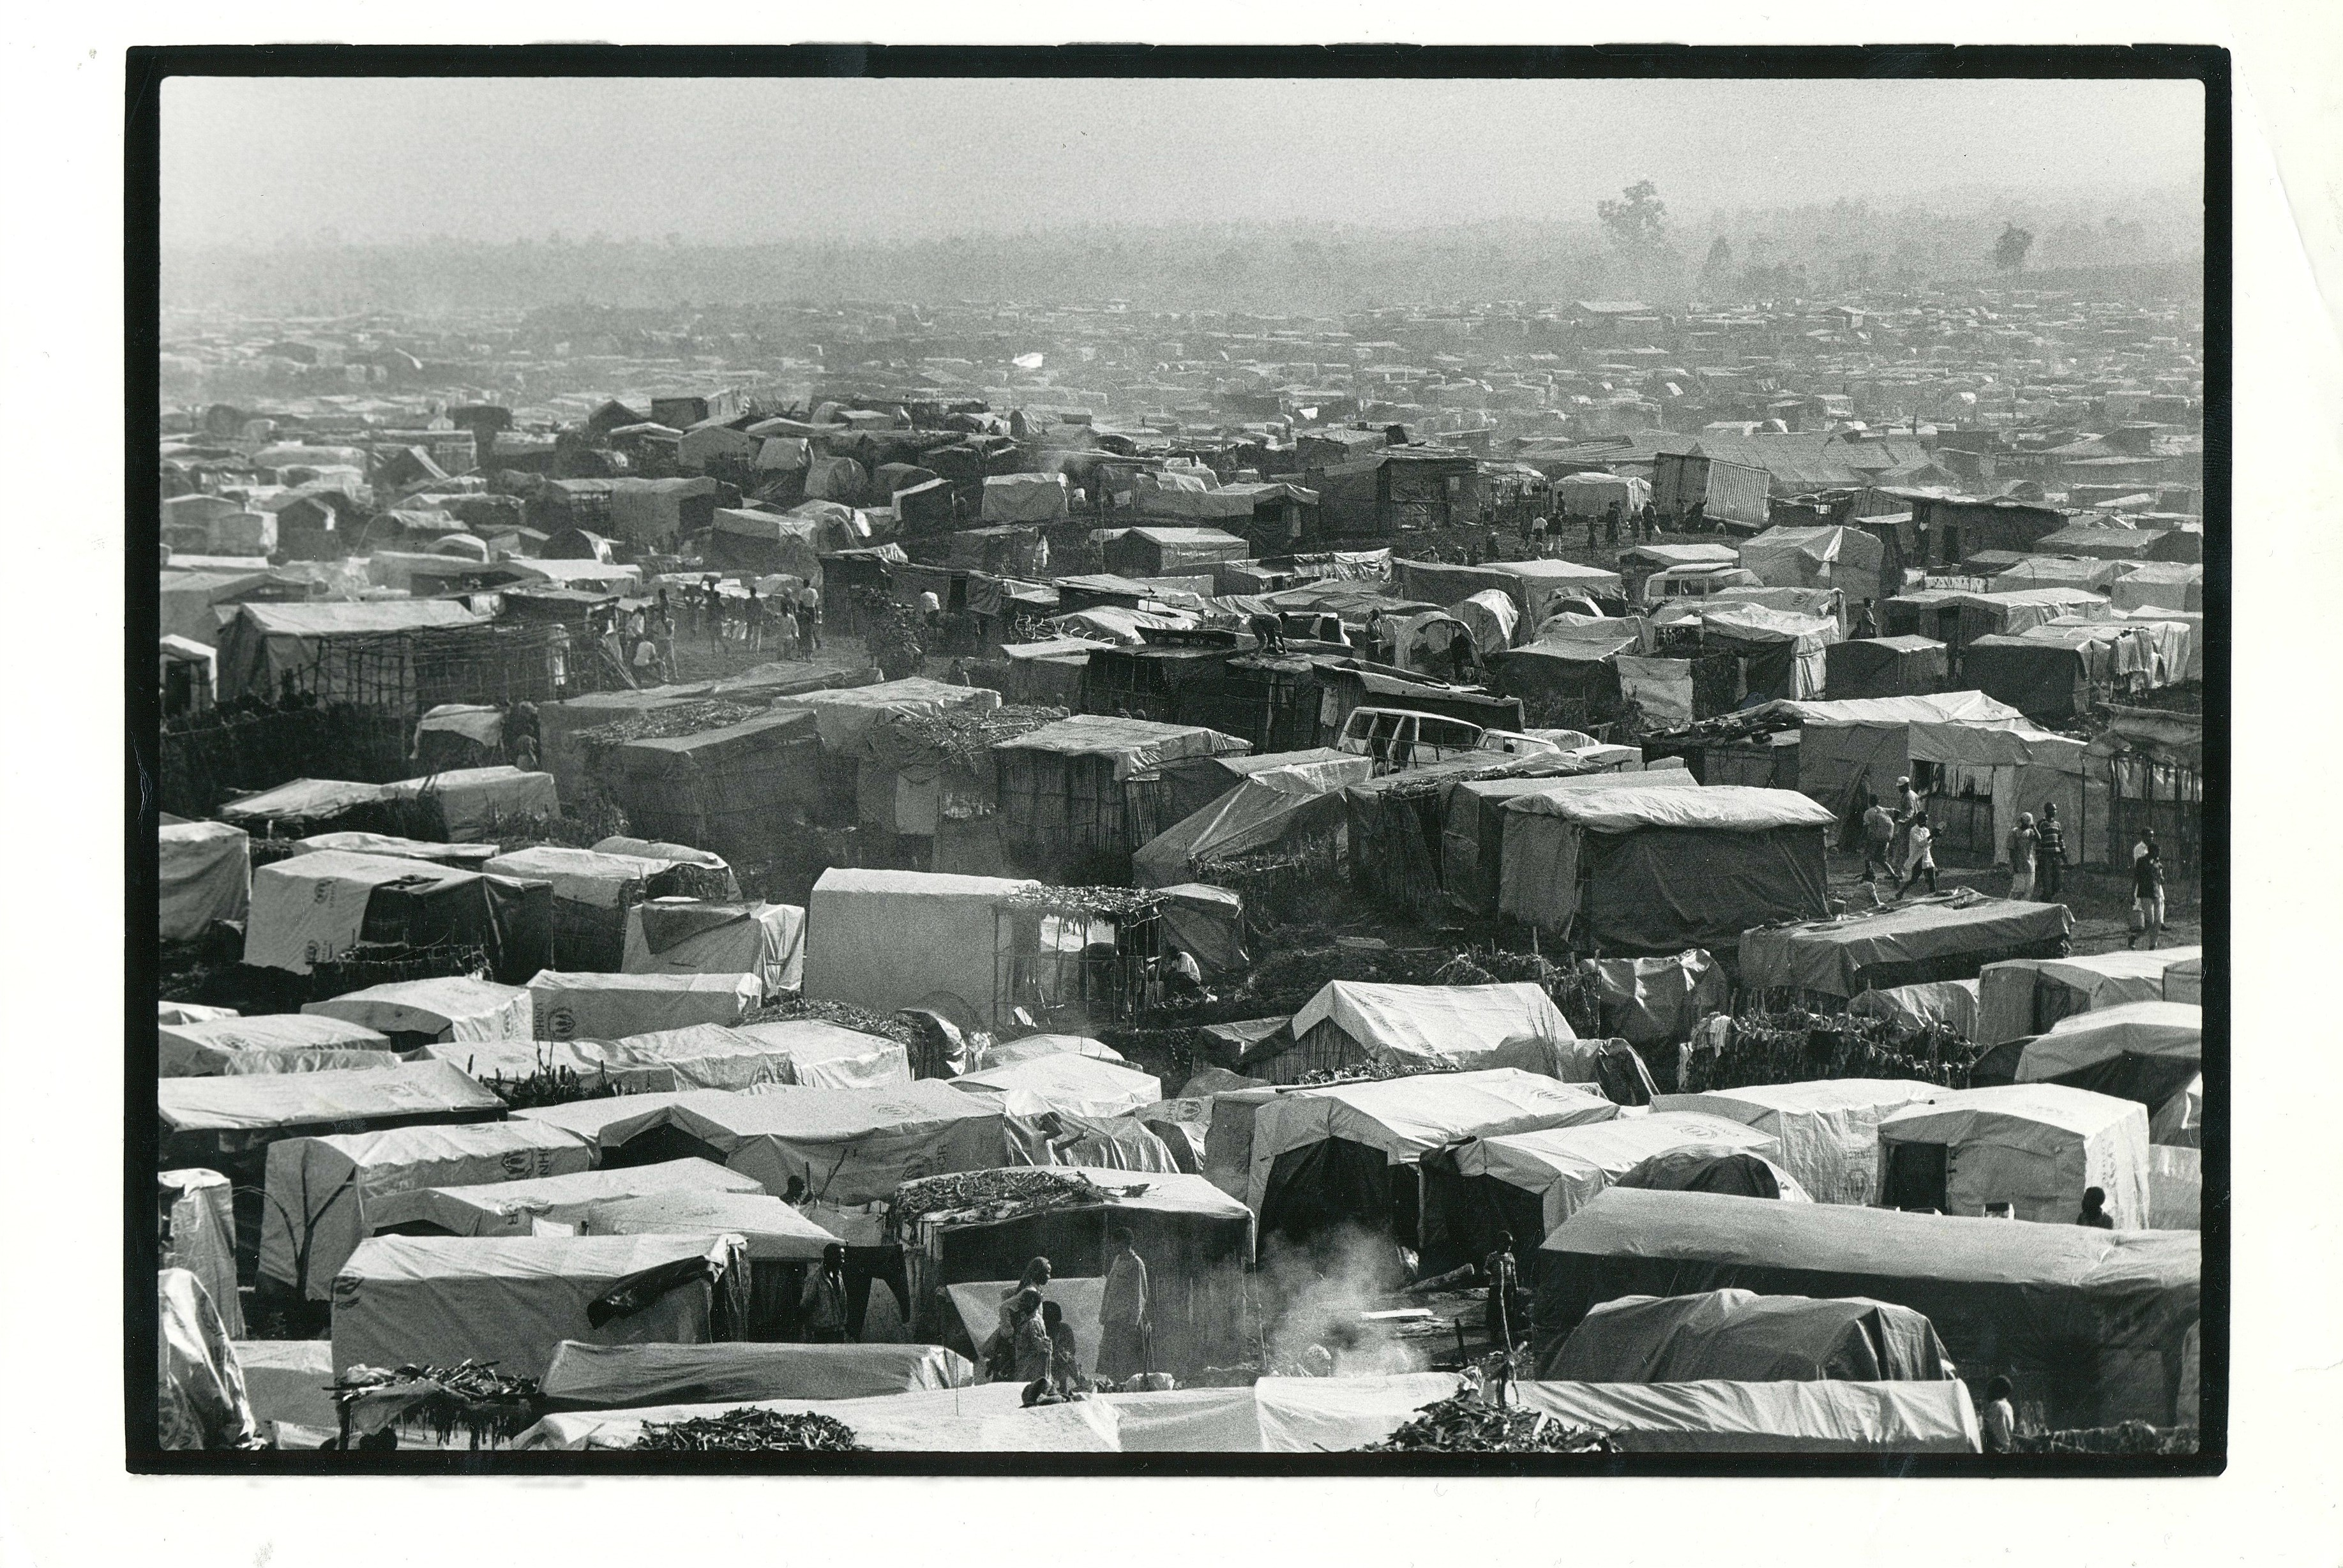 Tents at Katale camp in Zaire